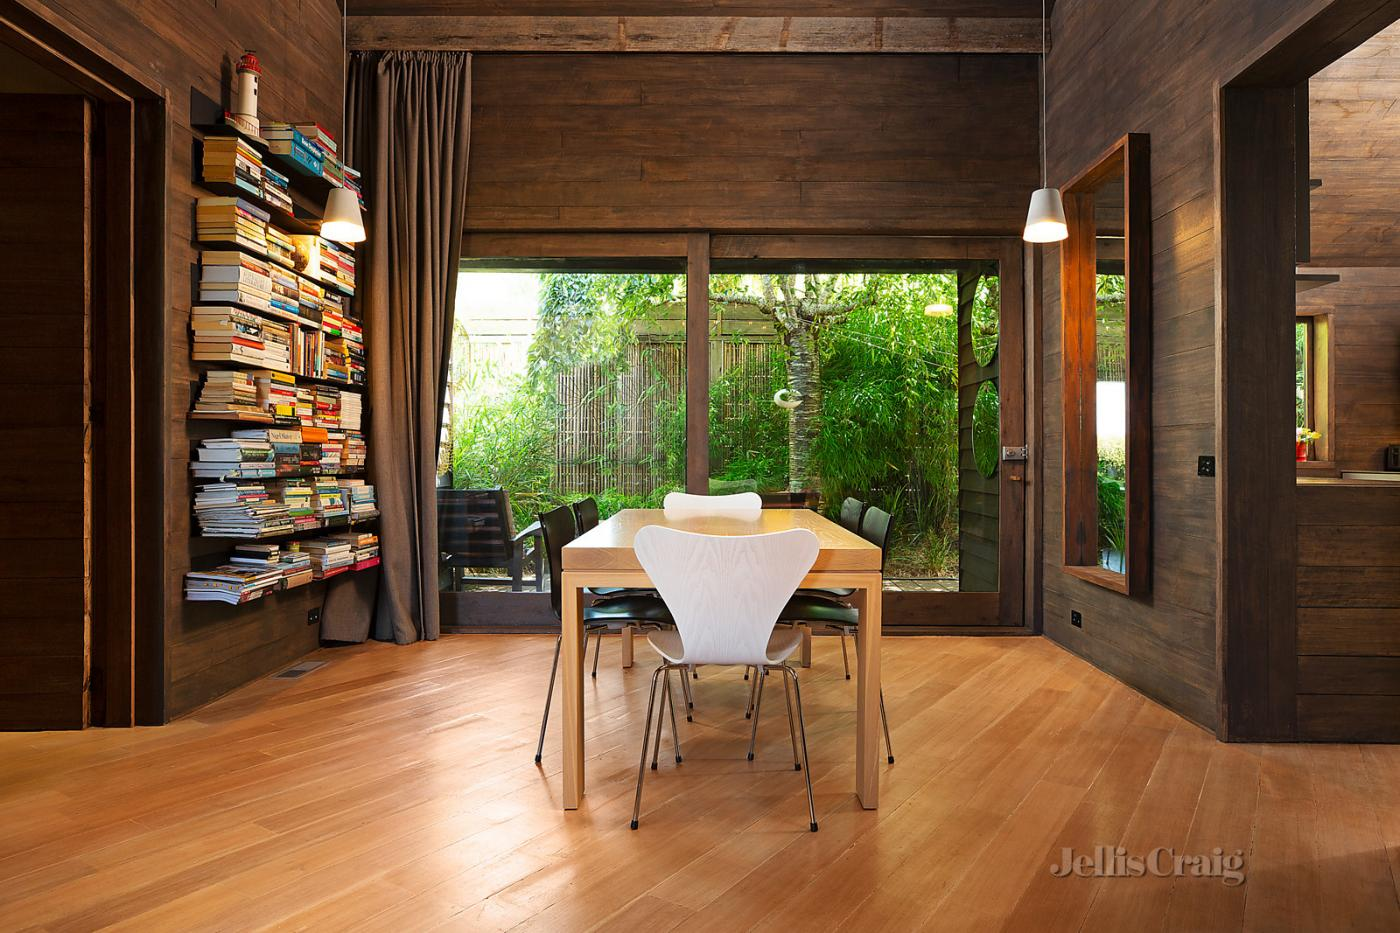 1a-queensberry-street-daylesford-vic-3460-real-estate-photo-4-xlarge-12601082